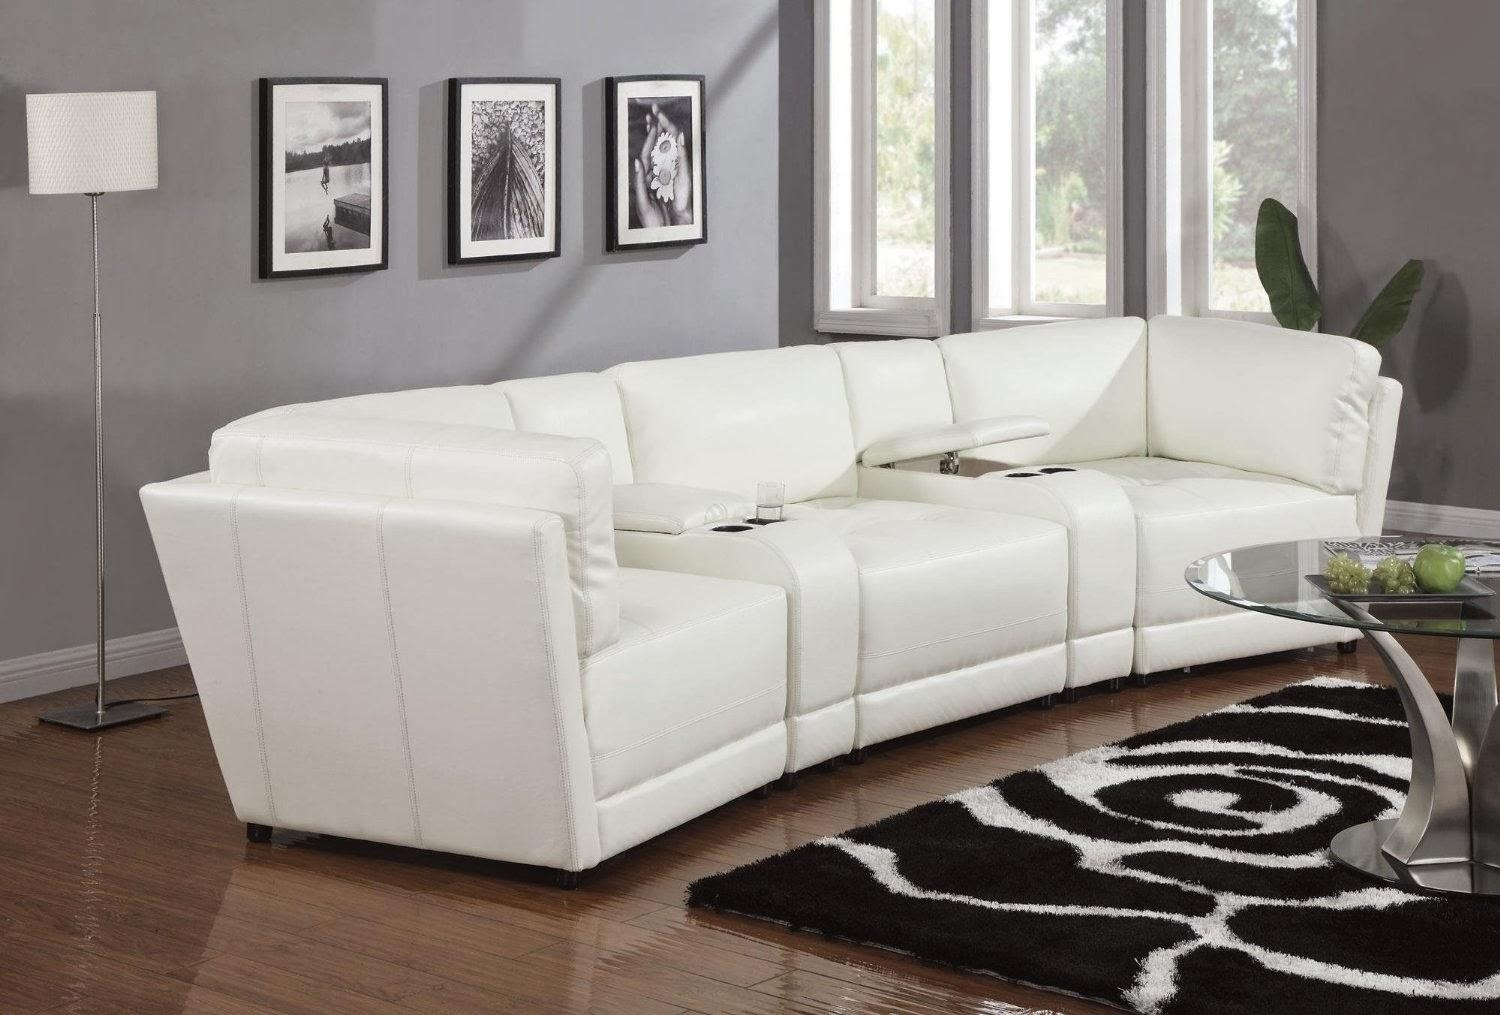 Magnificent Curved Sectional Sofas For Small Spaces #3849 Pertaining To Sectional Sofas In Small Spaces (Image 12 of 20)